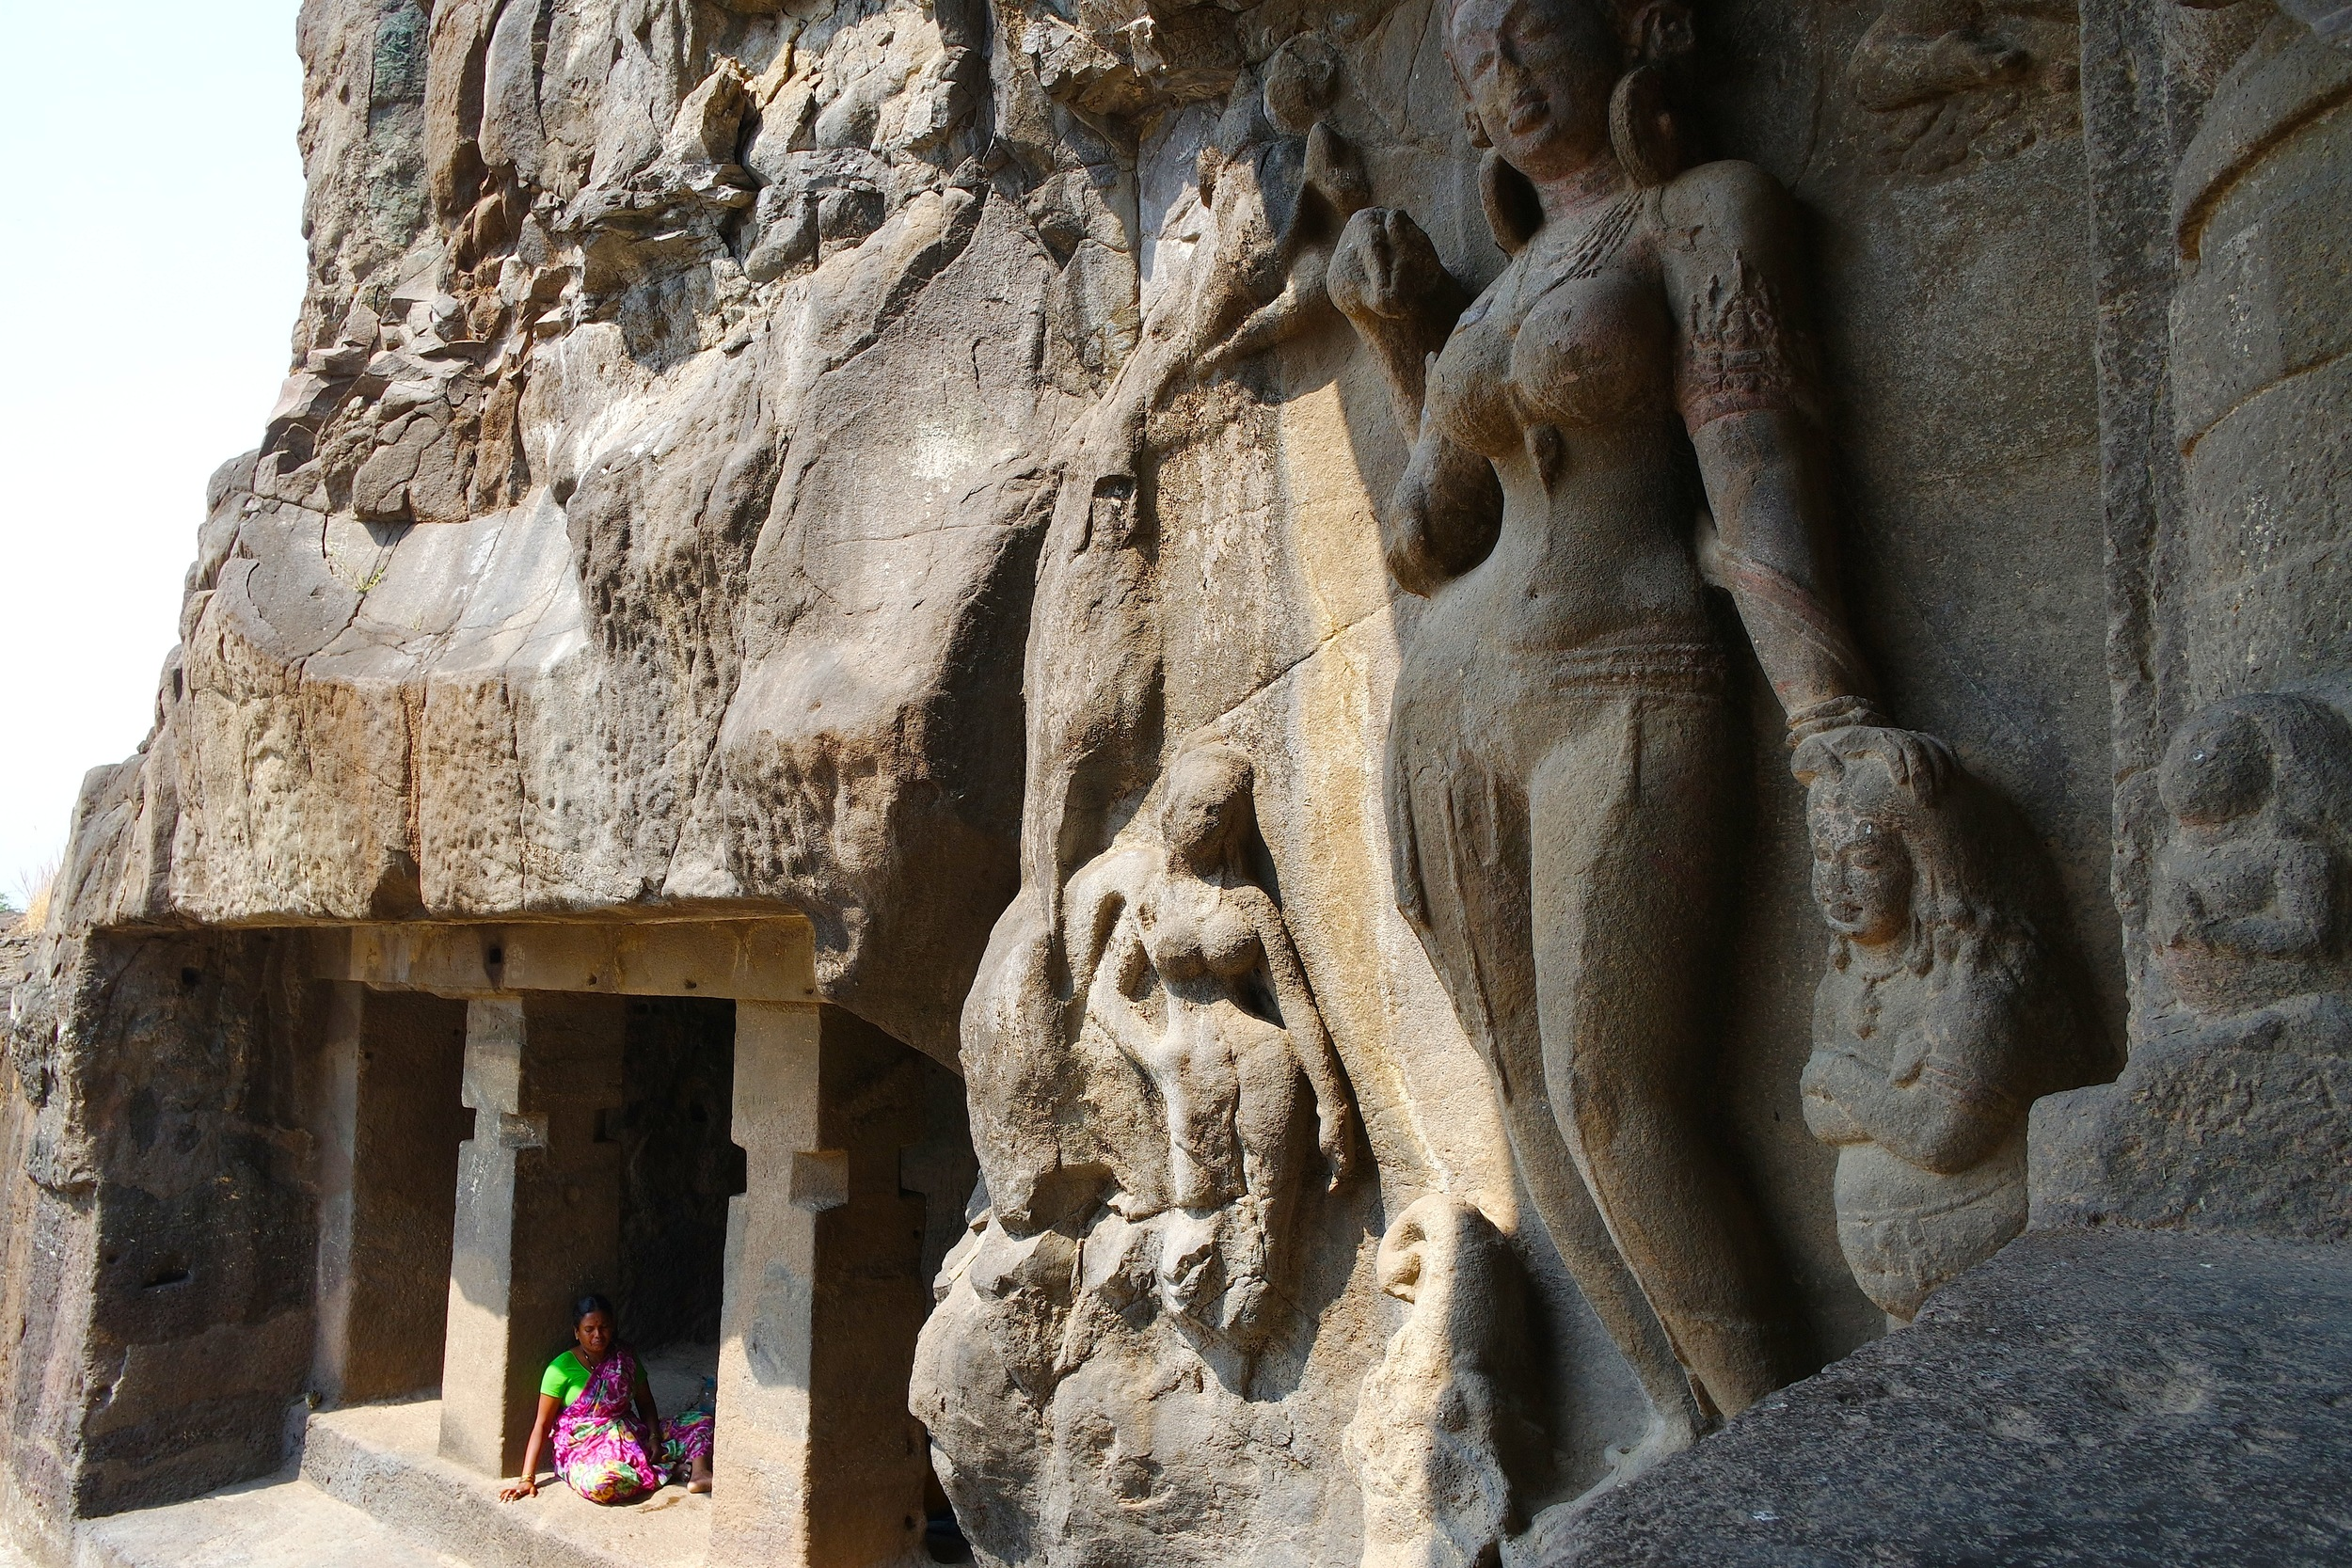 Cave 21, part of the Hindu temples at Ellora in India